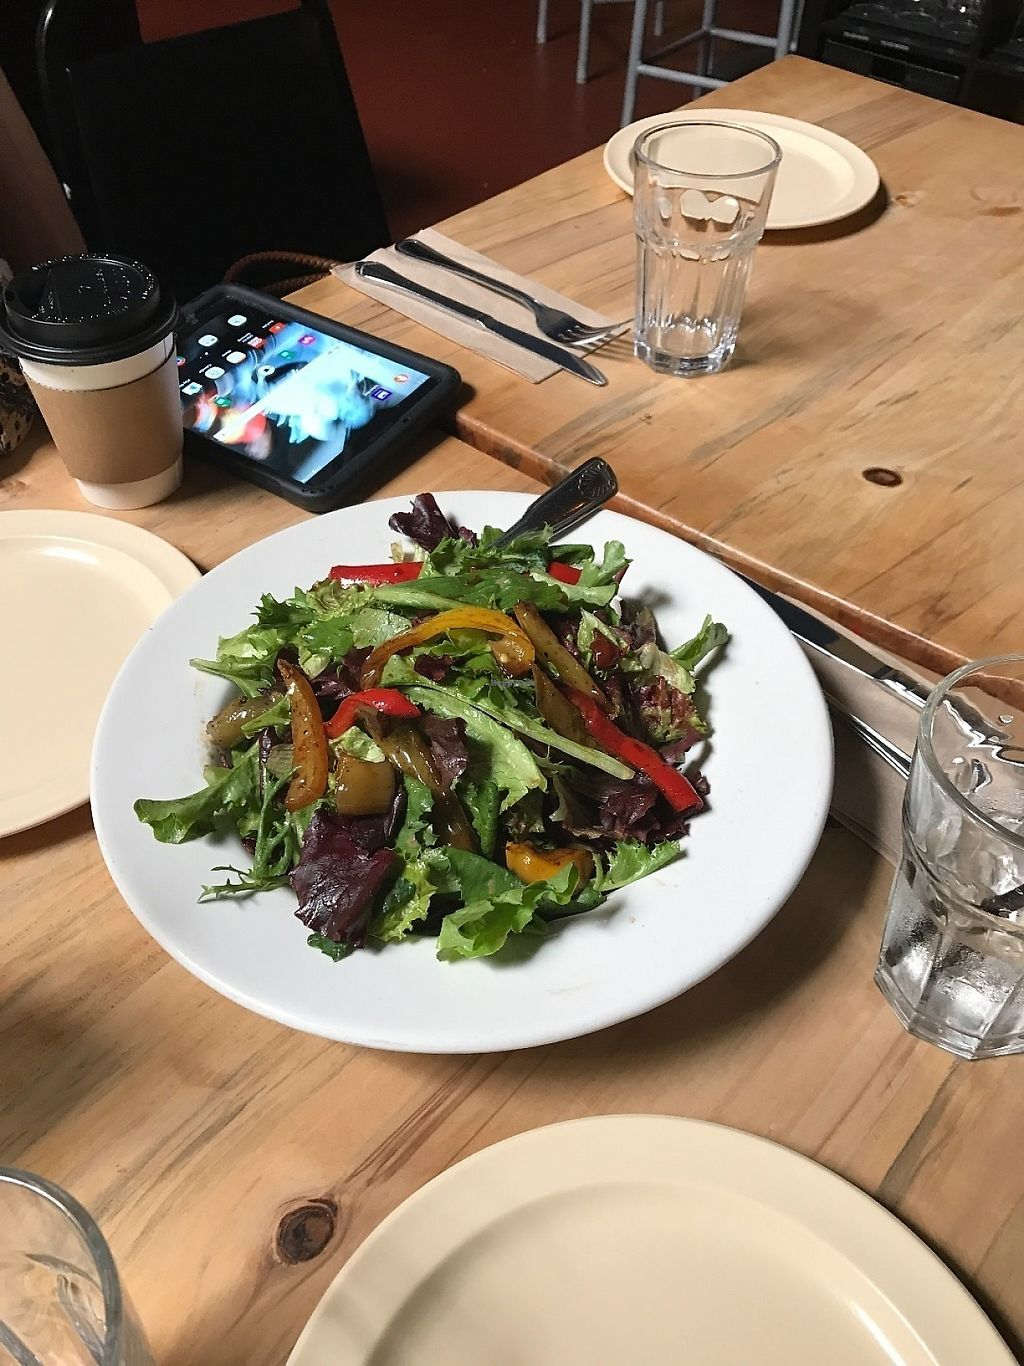 """Photo of Kingston 11 Cuisine  by <a href=""""/members/profile/Tigra220"""">Tigra220</a> <br/>Mixed Green Salad <br/> May 18, 2017  - <a href='/contact/abuse/image/92380/259702'>Report</a>"""